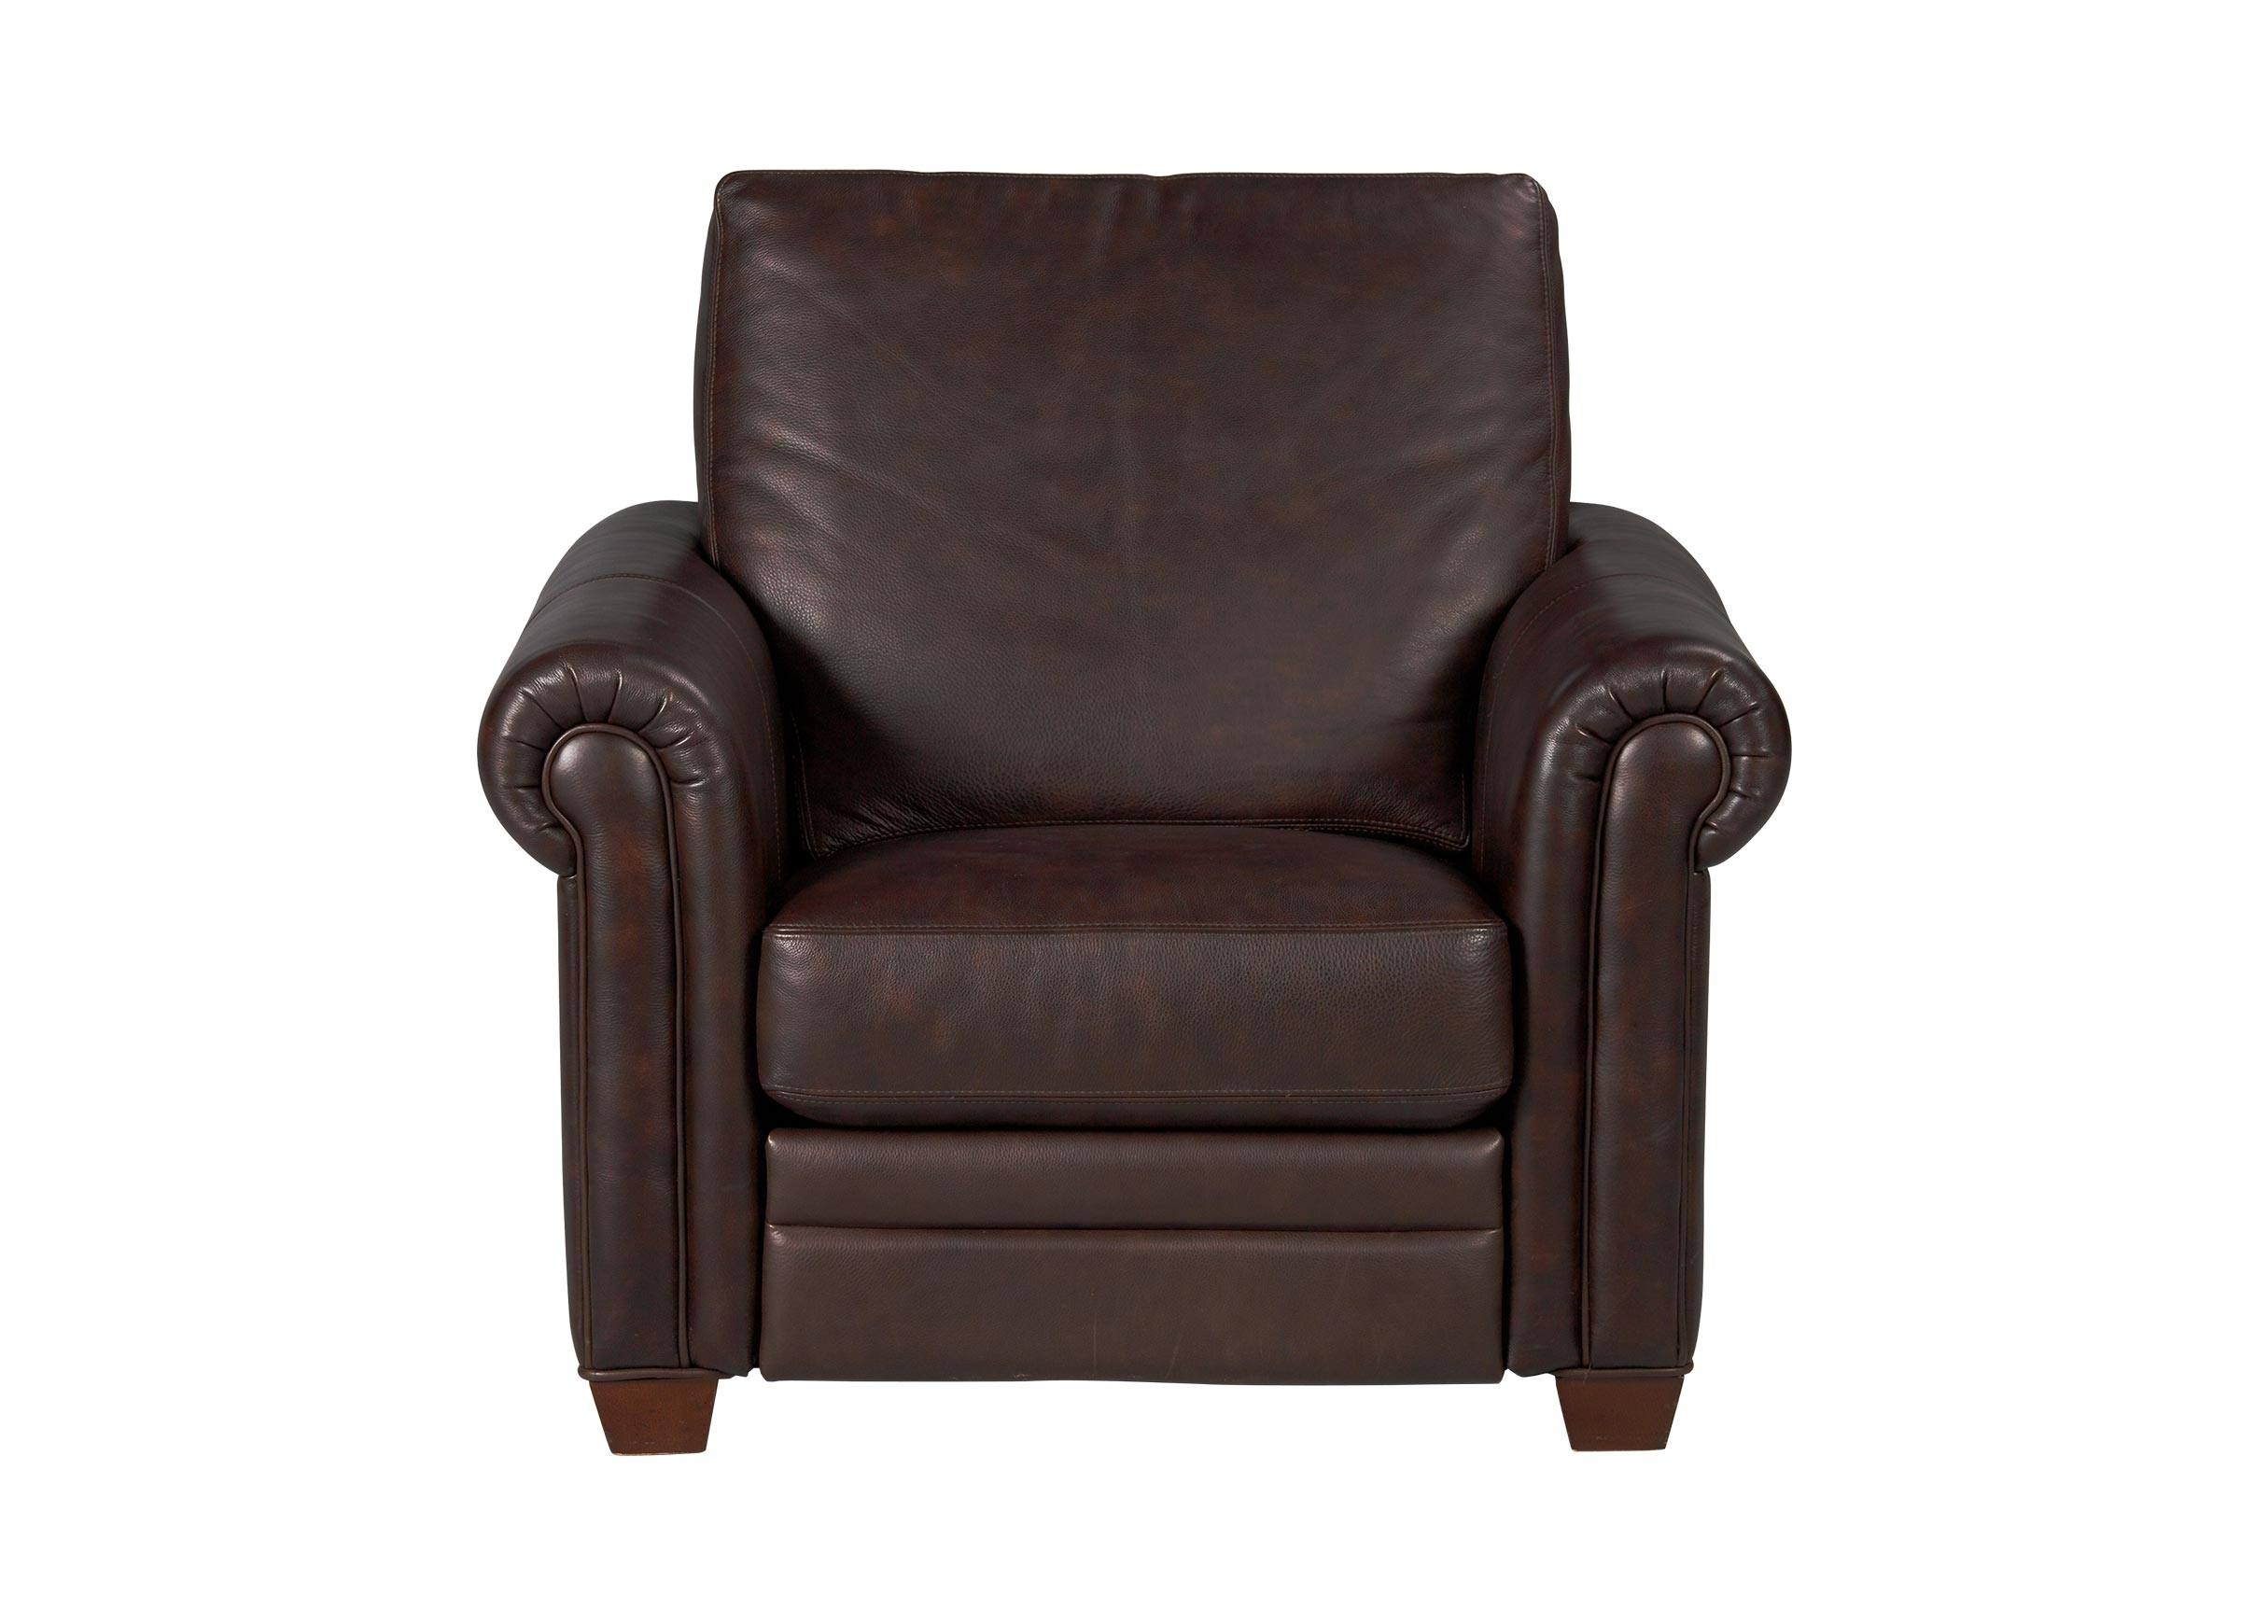 Conor Leather Recliner The Conor Collection